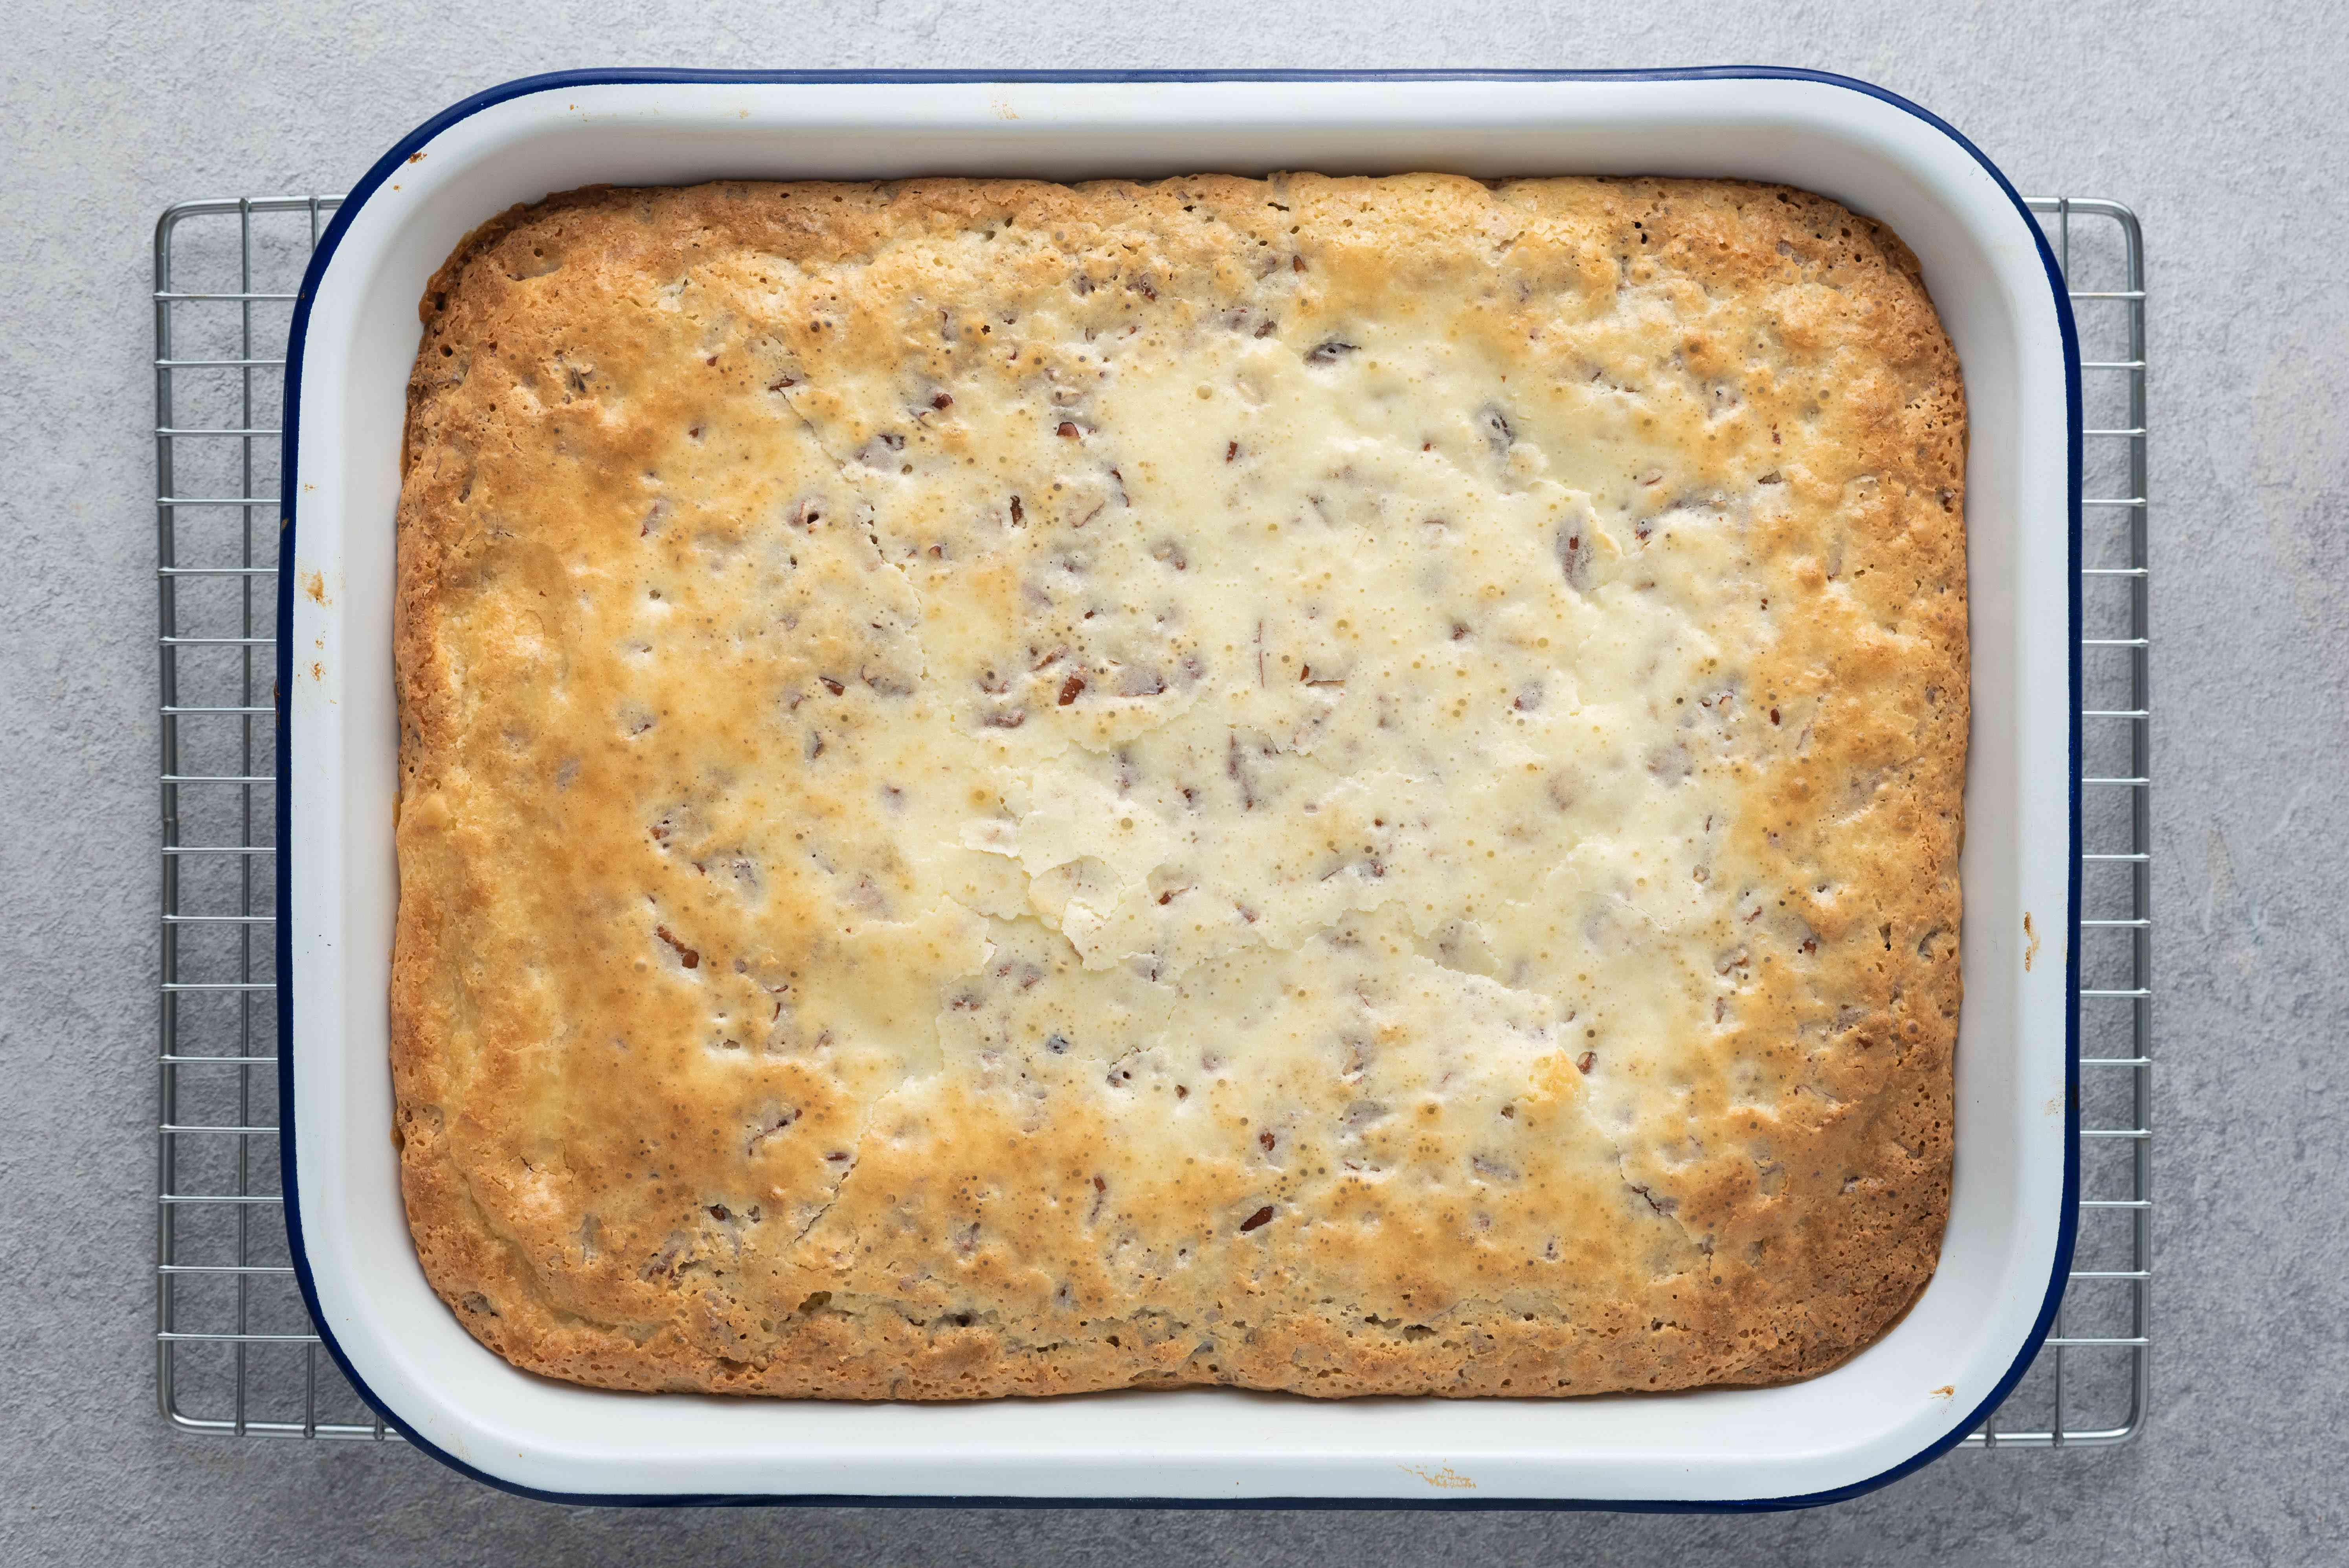 cake in a baking dish cooling on a wire rack